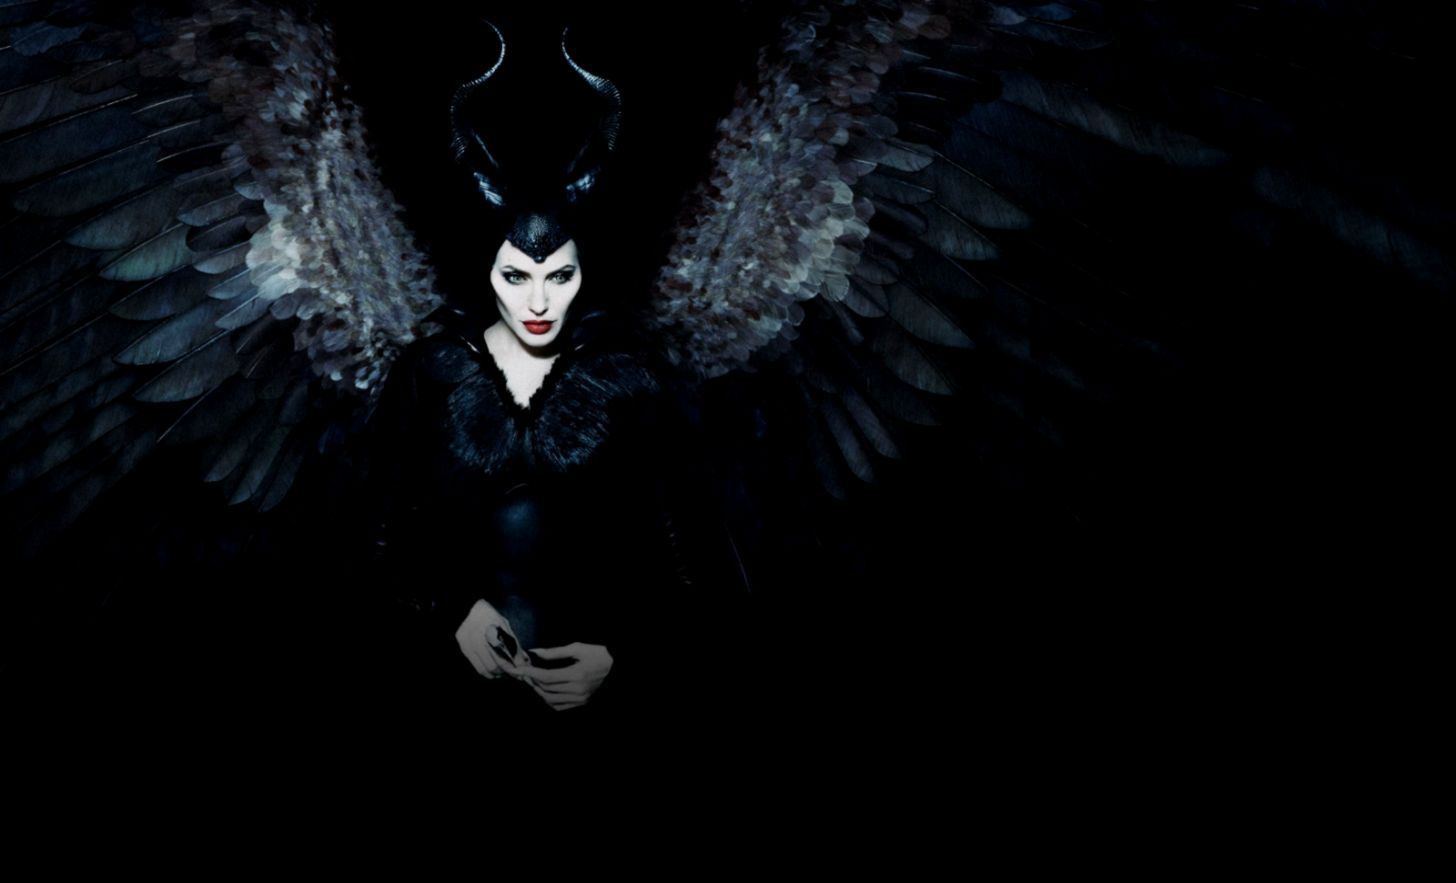 Maleficent Hd Wallpapers Free Download Important Wallpapers